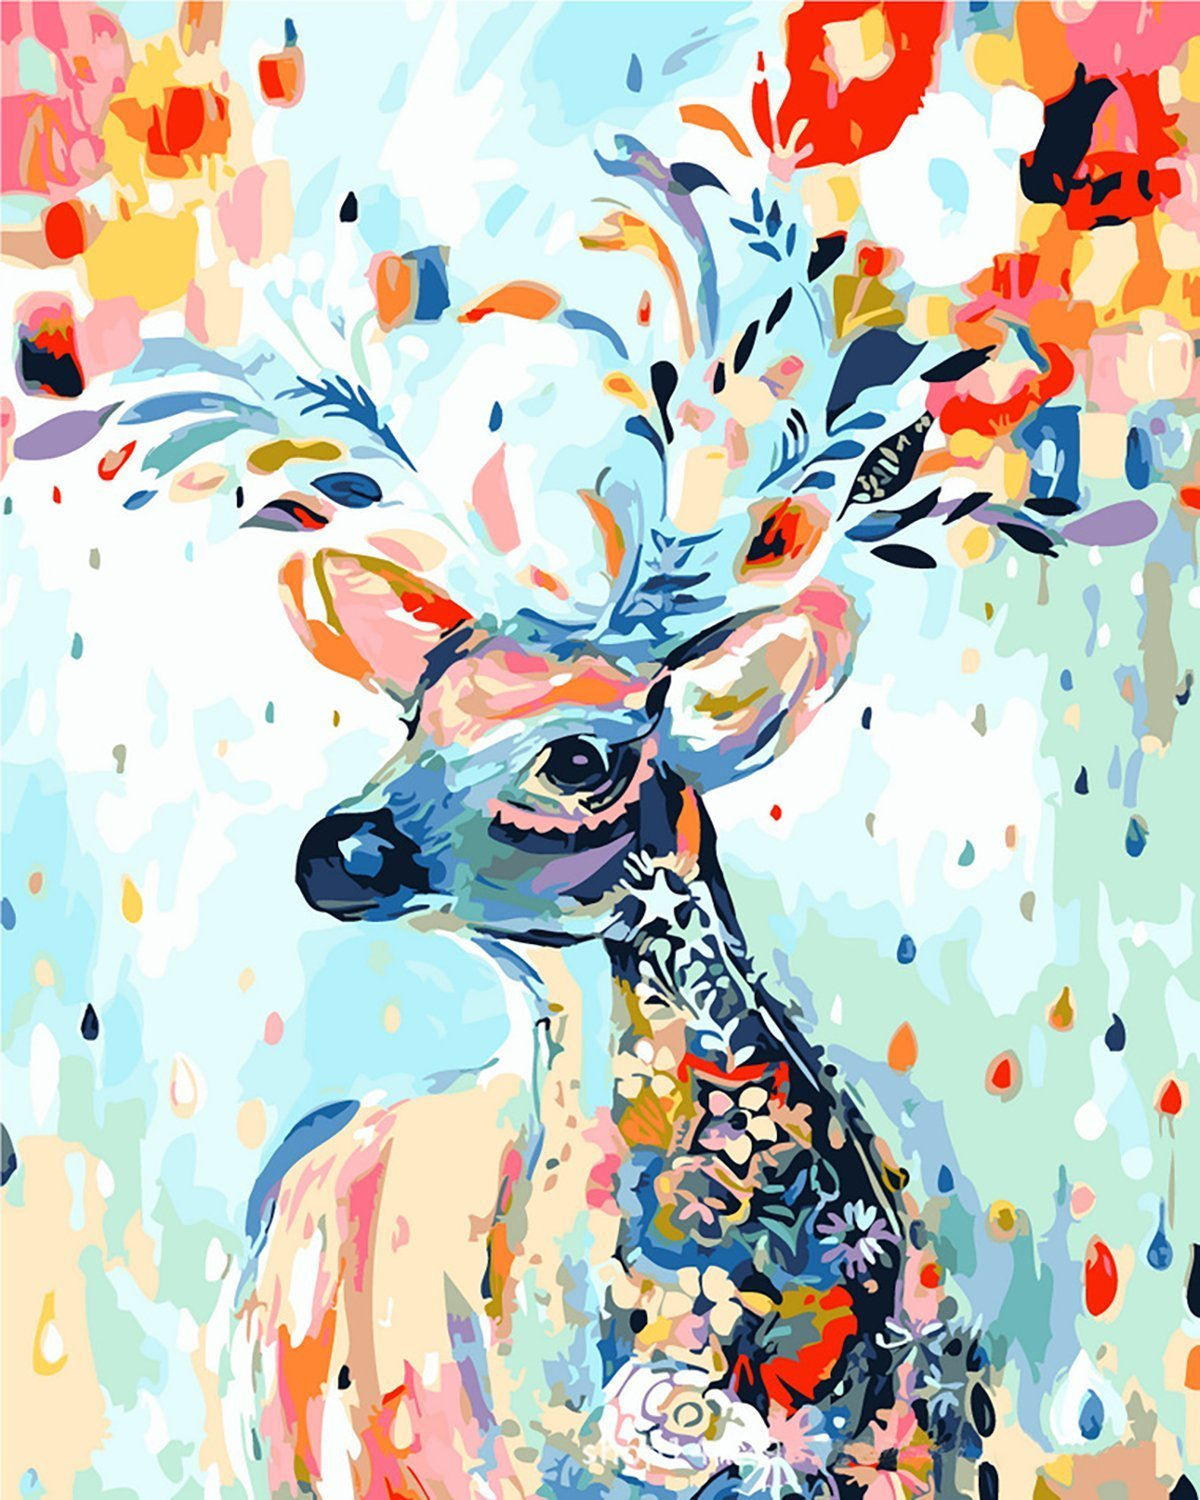 [Wooden Framed]Diy Oil Painting, Paint By Number Kits Home Decor Wall Pic Value Gift-Painted Deer 16X20 Inch